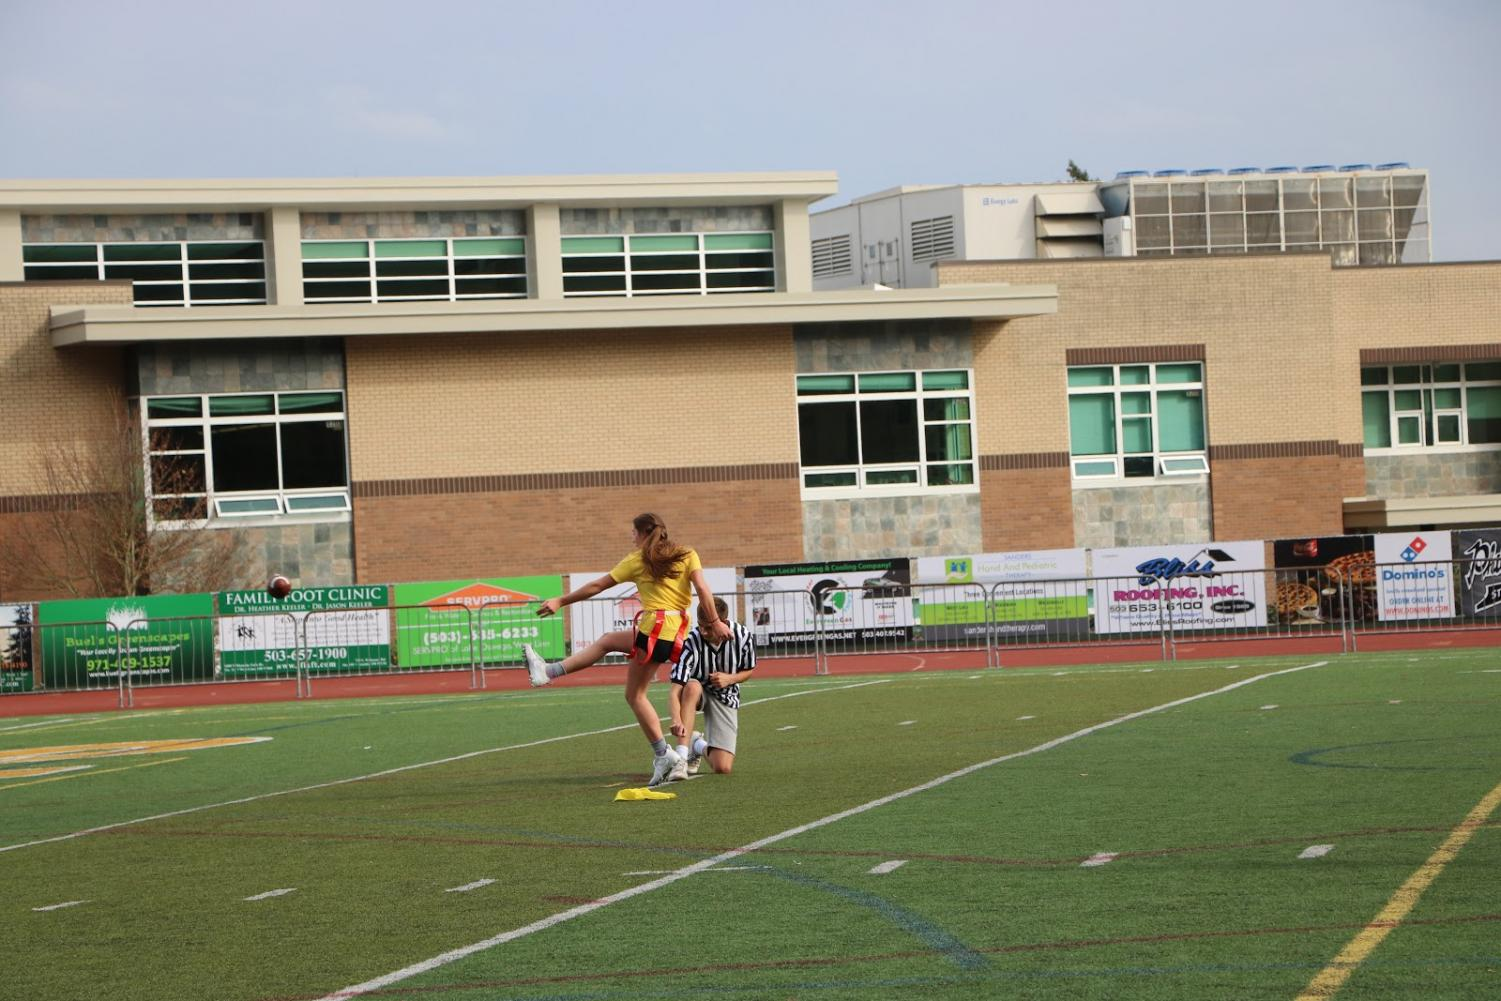 A+player+on+the+yellow+team+attempts+a+field+goal+kick+in+hope+to+score+a+few+extra+points+for+her+team.